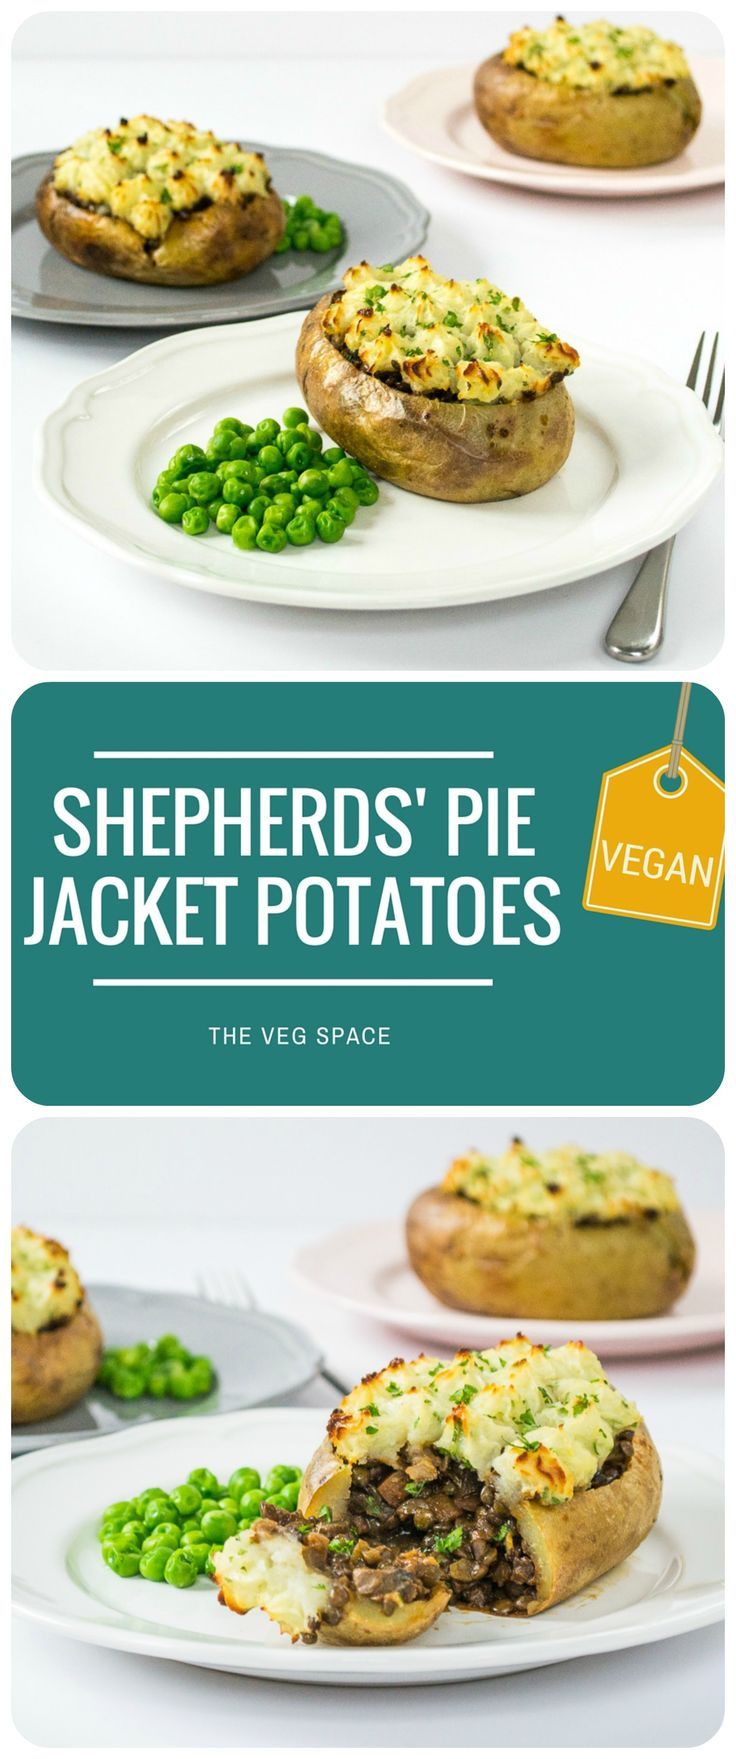 Shepherds' Pie Jacket Potatoes | vegan recipe